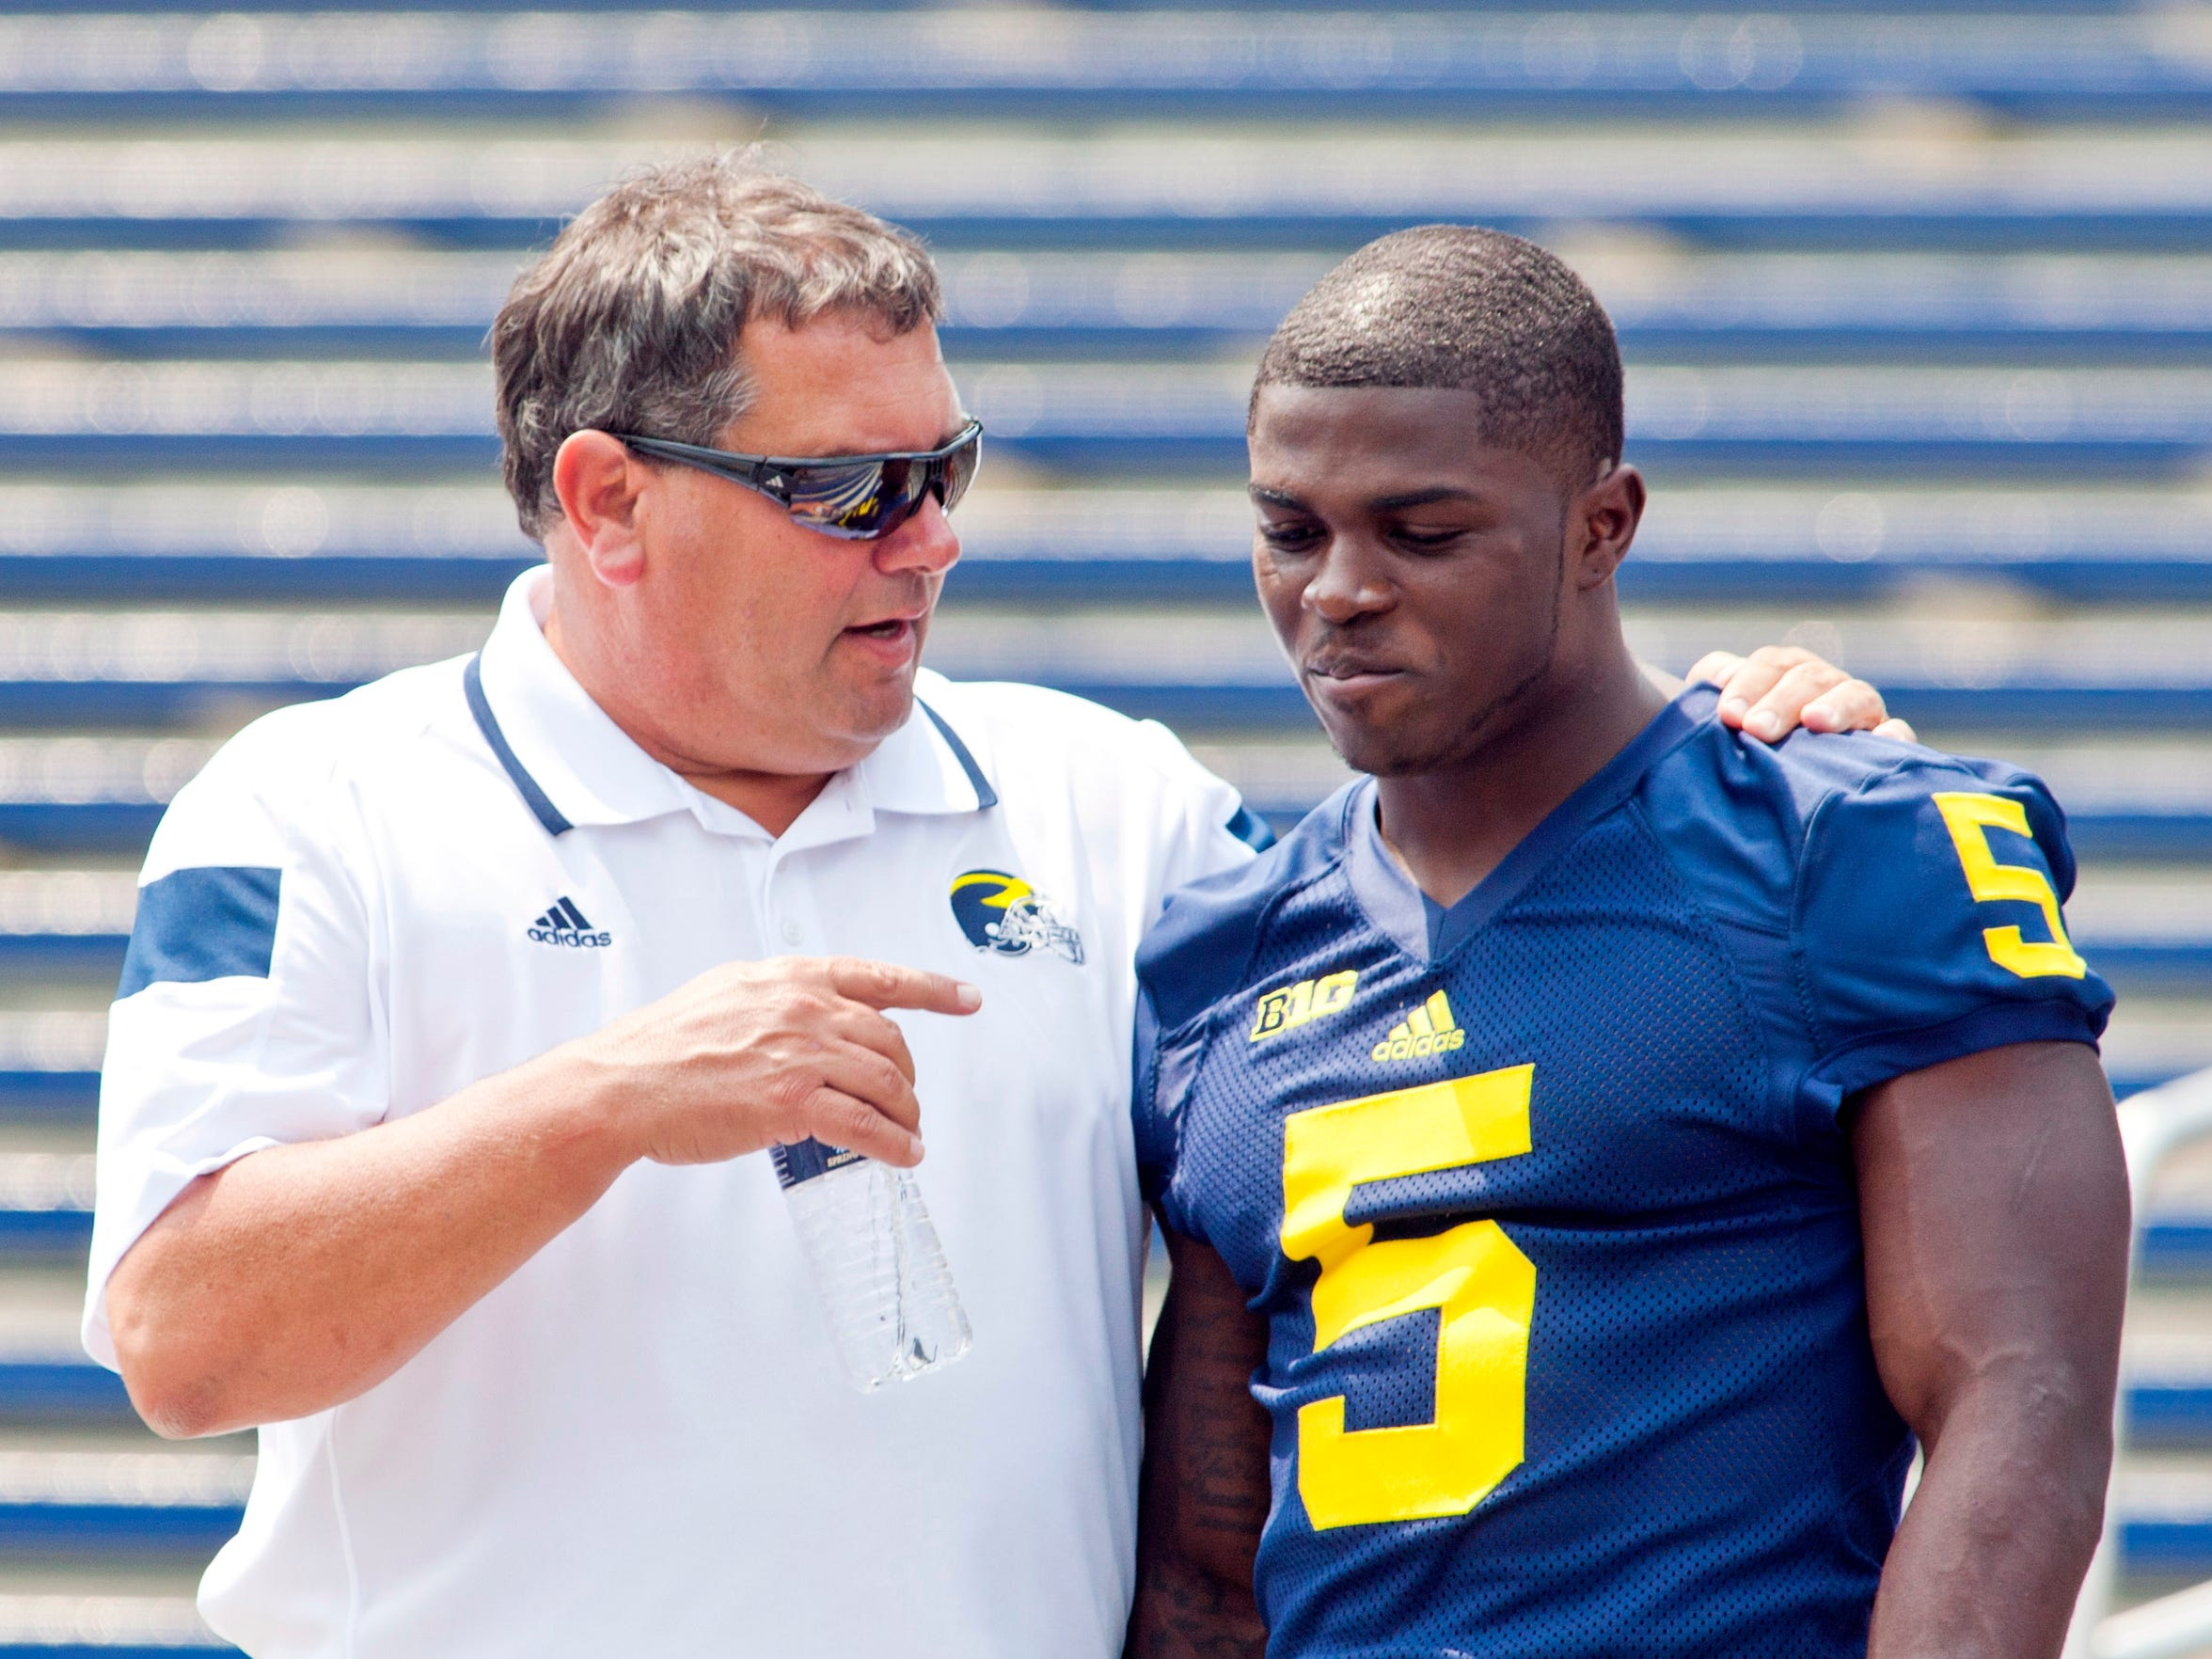 Brady Hoke, left, speaks with Jabrill Peppers on Aug. 10, 2014.